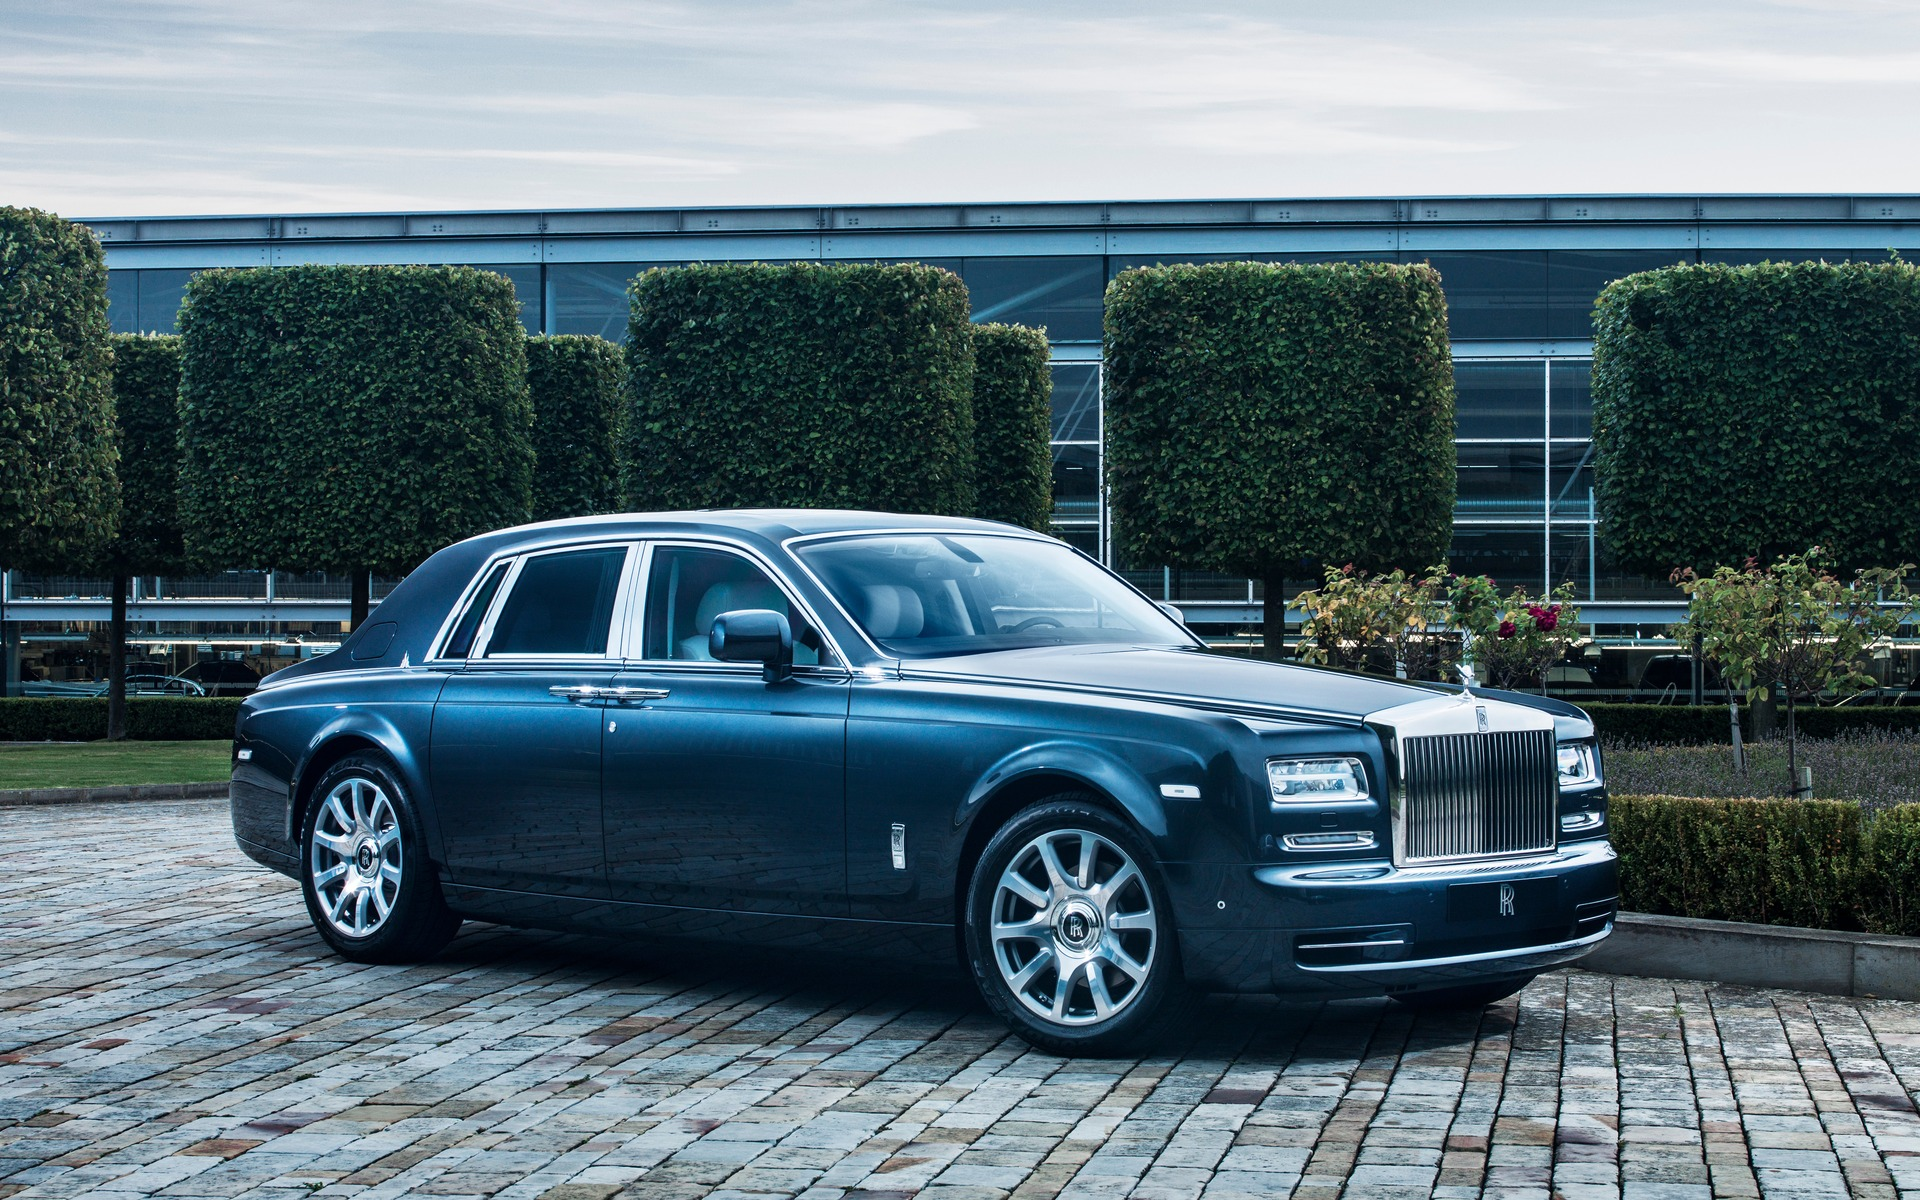 Rolls Royce Phantom Coupe Specifications, Price, Mileage, Pics, Review